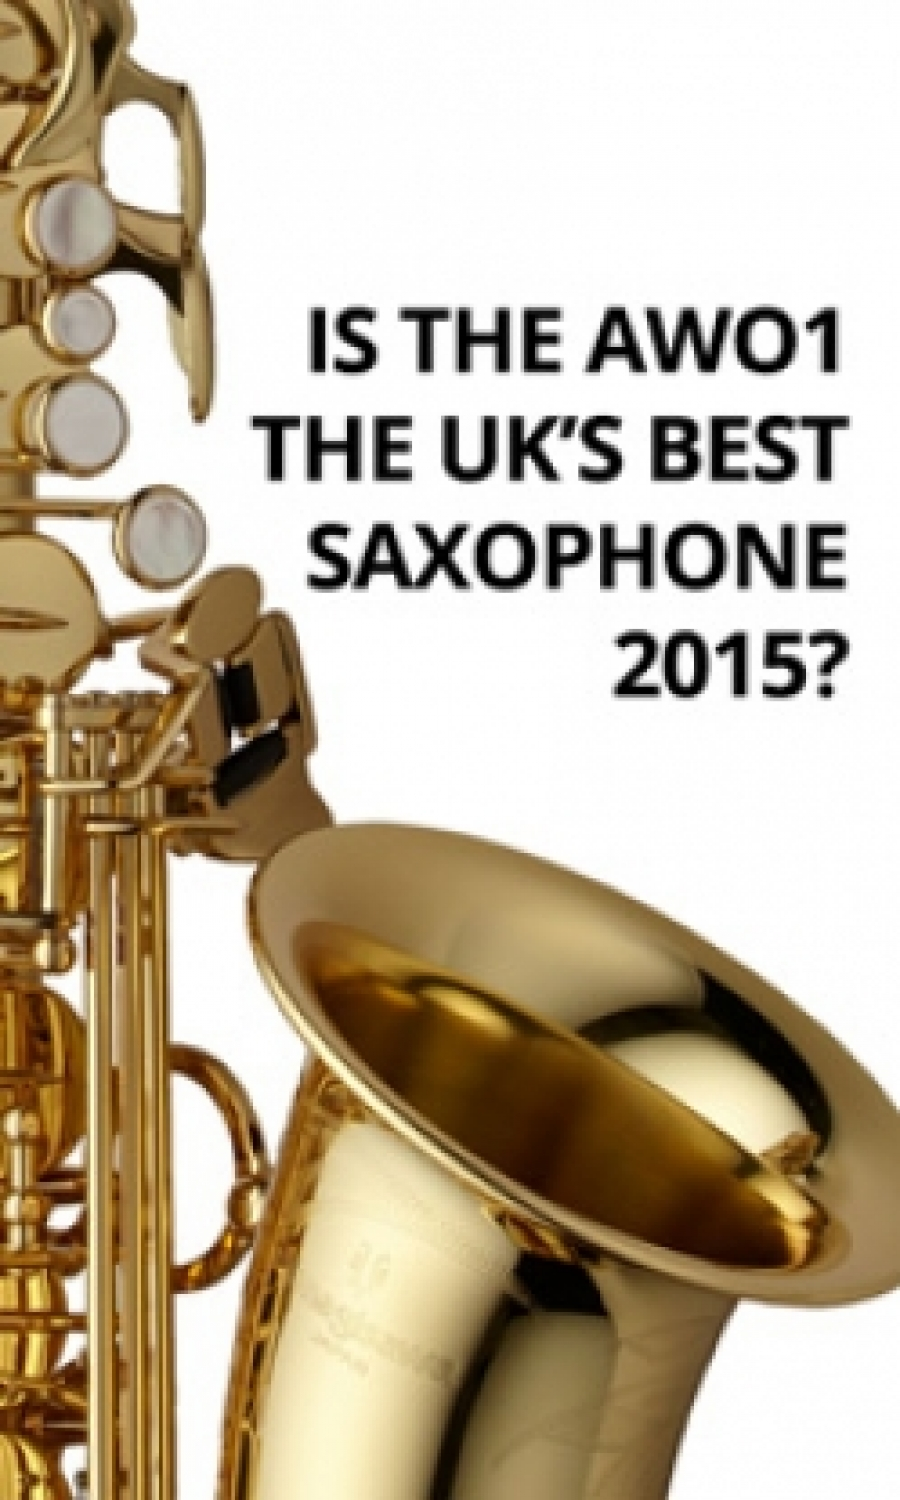 AWO1 nominated as UK's Best Sax 2015